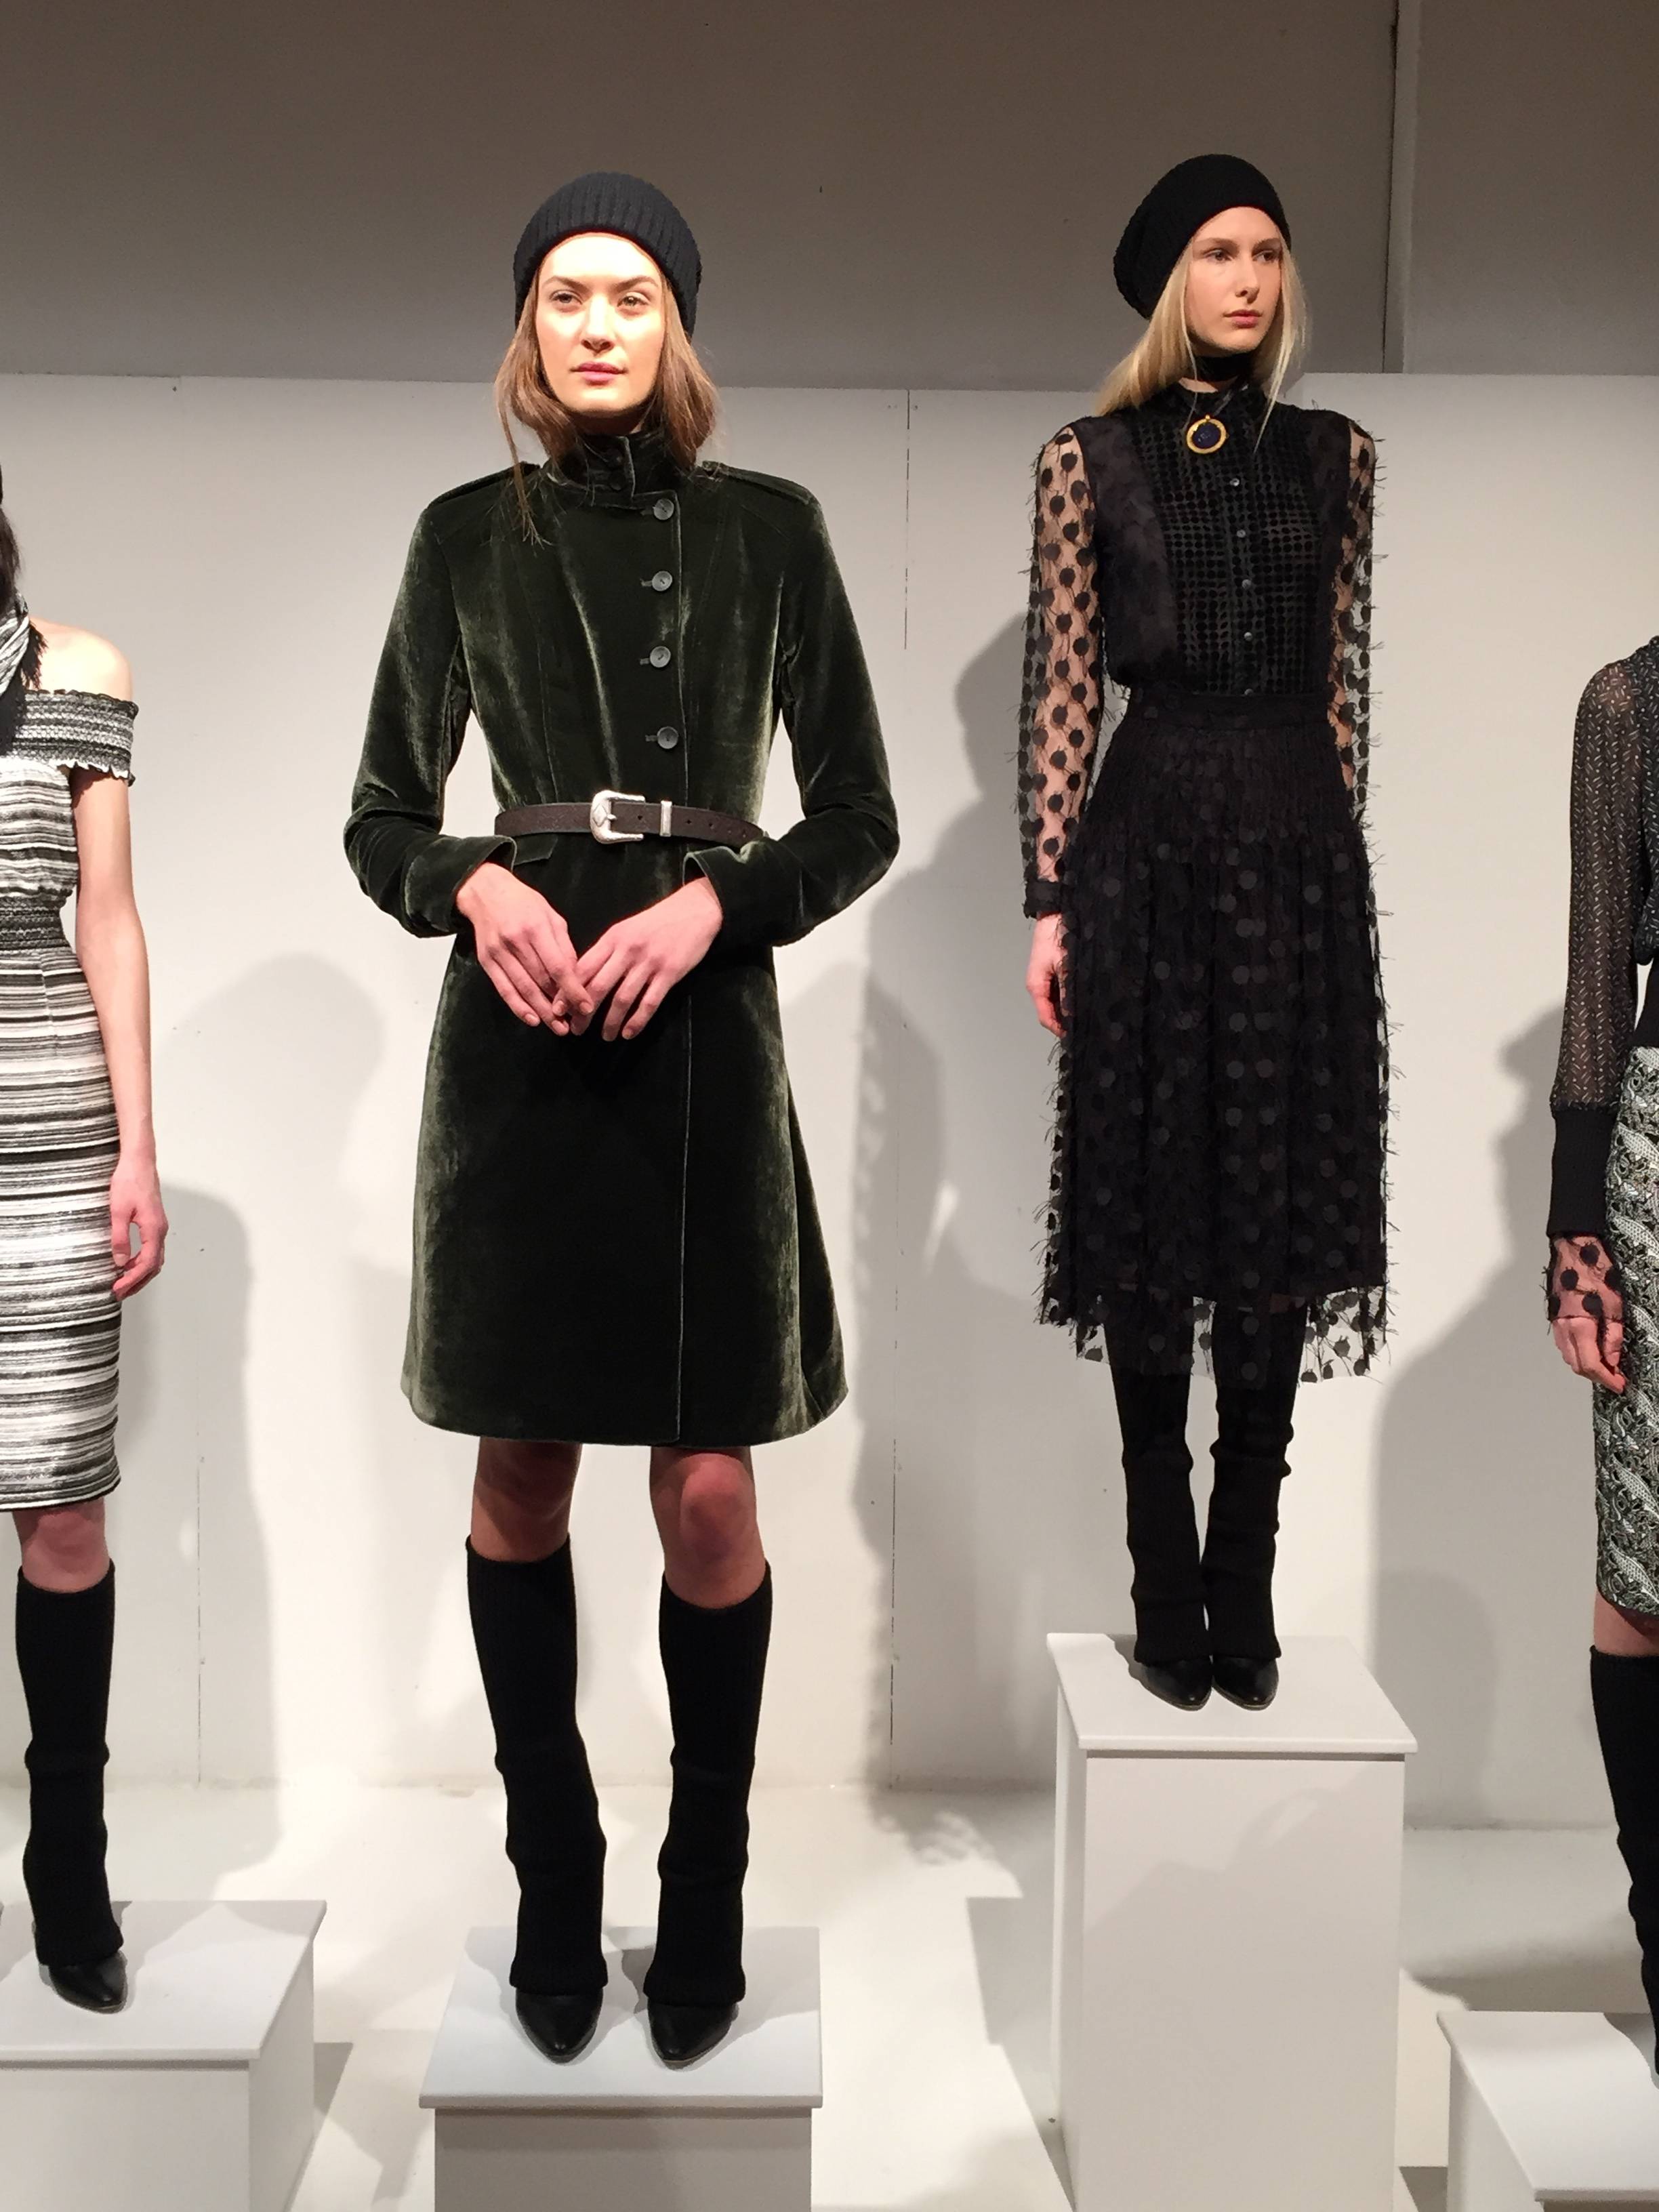 NYFW Hanley Fashion Presentation Fall:Winter 2016 Louboutins & Love Fashion Blog Esther Santer NYC Street Style Runway Models Collection Press Coverage Photos Details Dress Gown Beautiful Gorgeous Stunning Pretty Shop New York City Celebrities 7.JPG